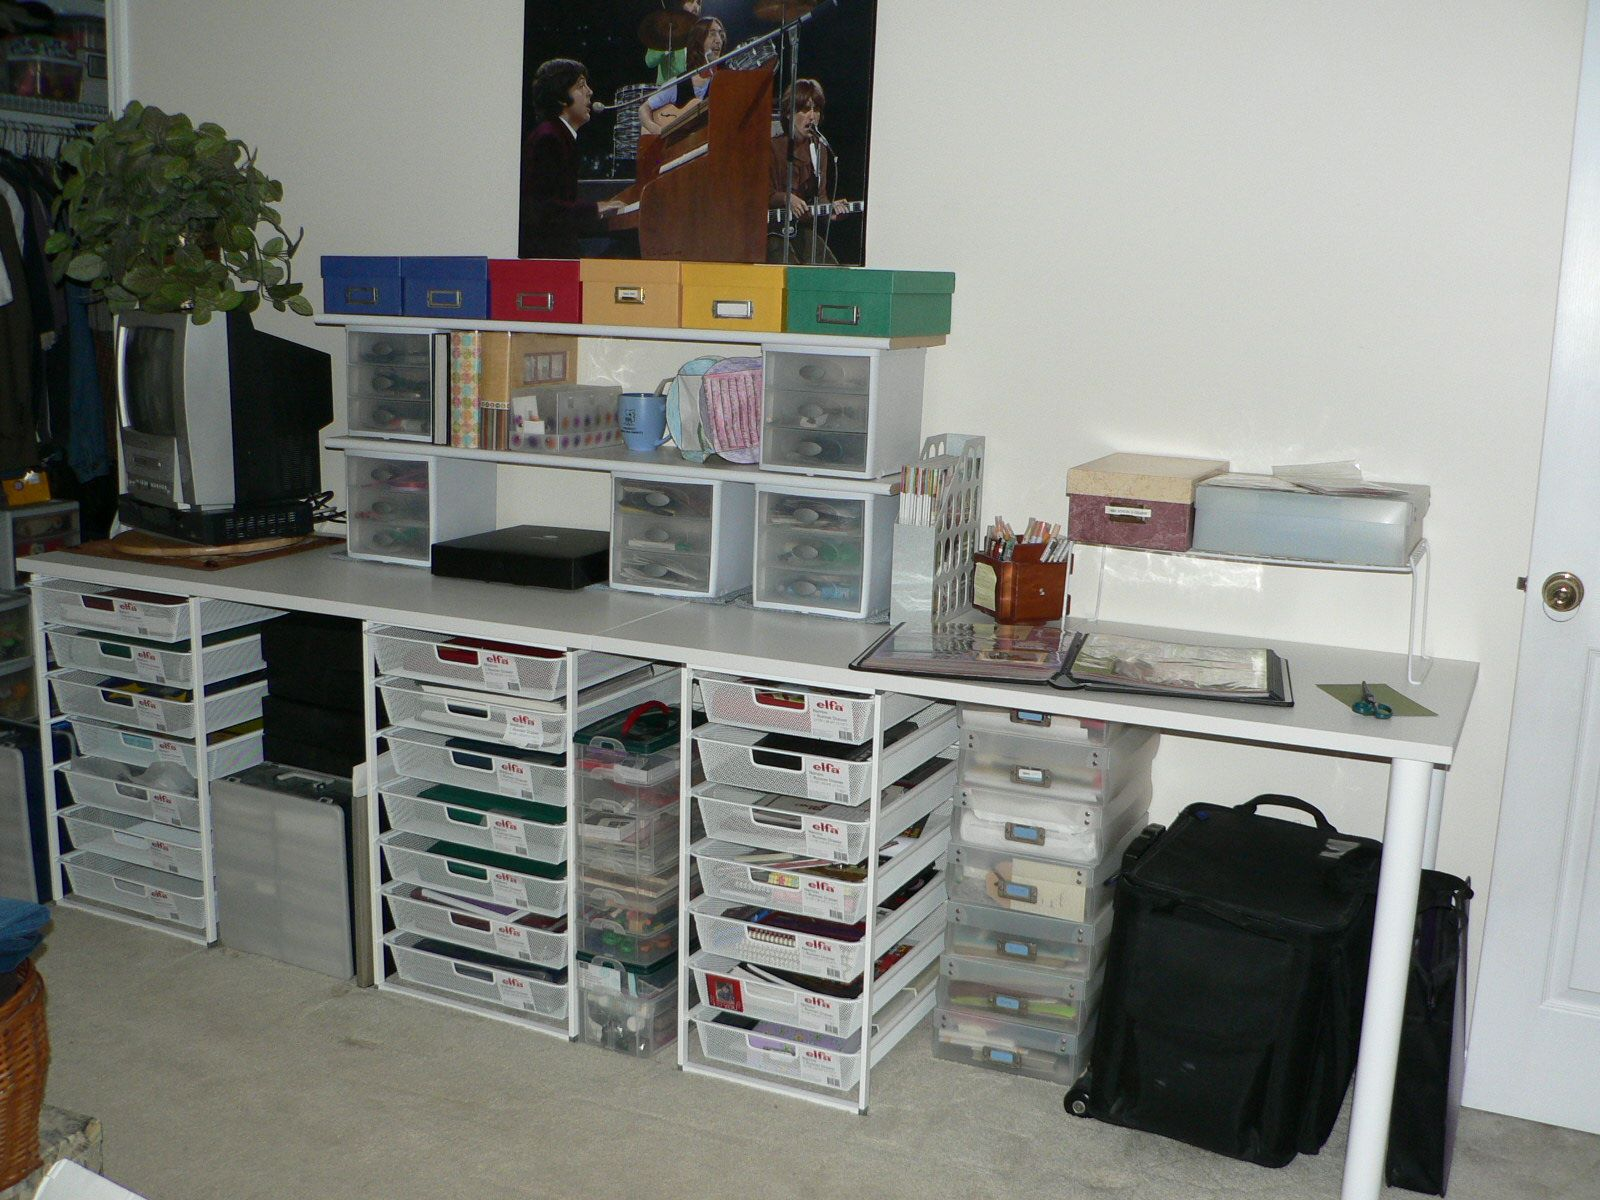 chairs container closets and desk shelving nowadays dates sale buy means elfa cheap of store